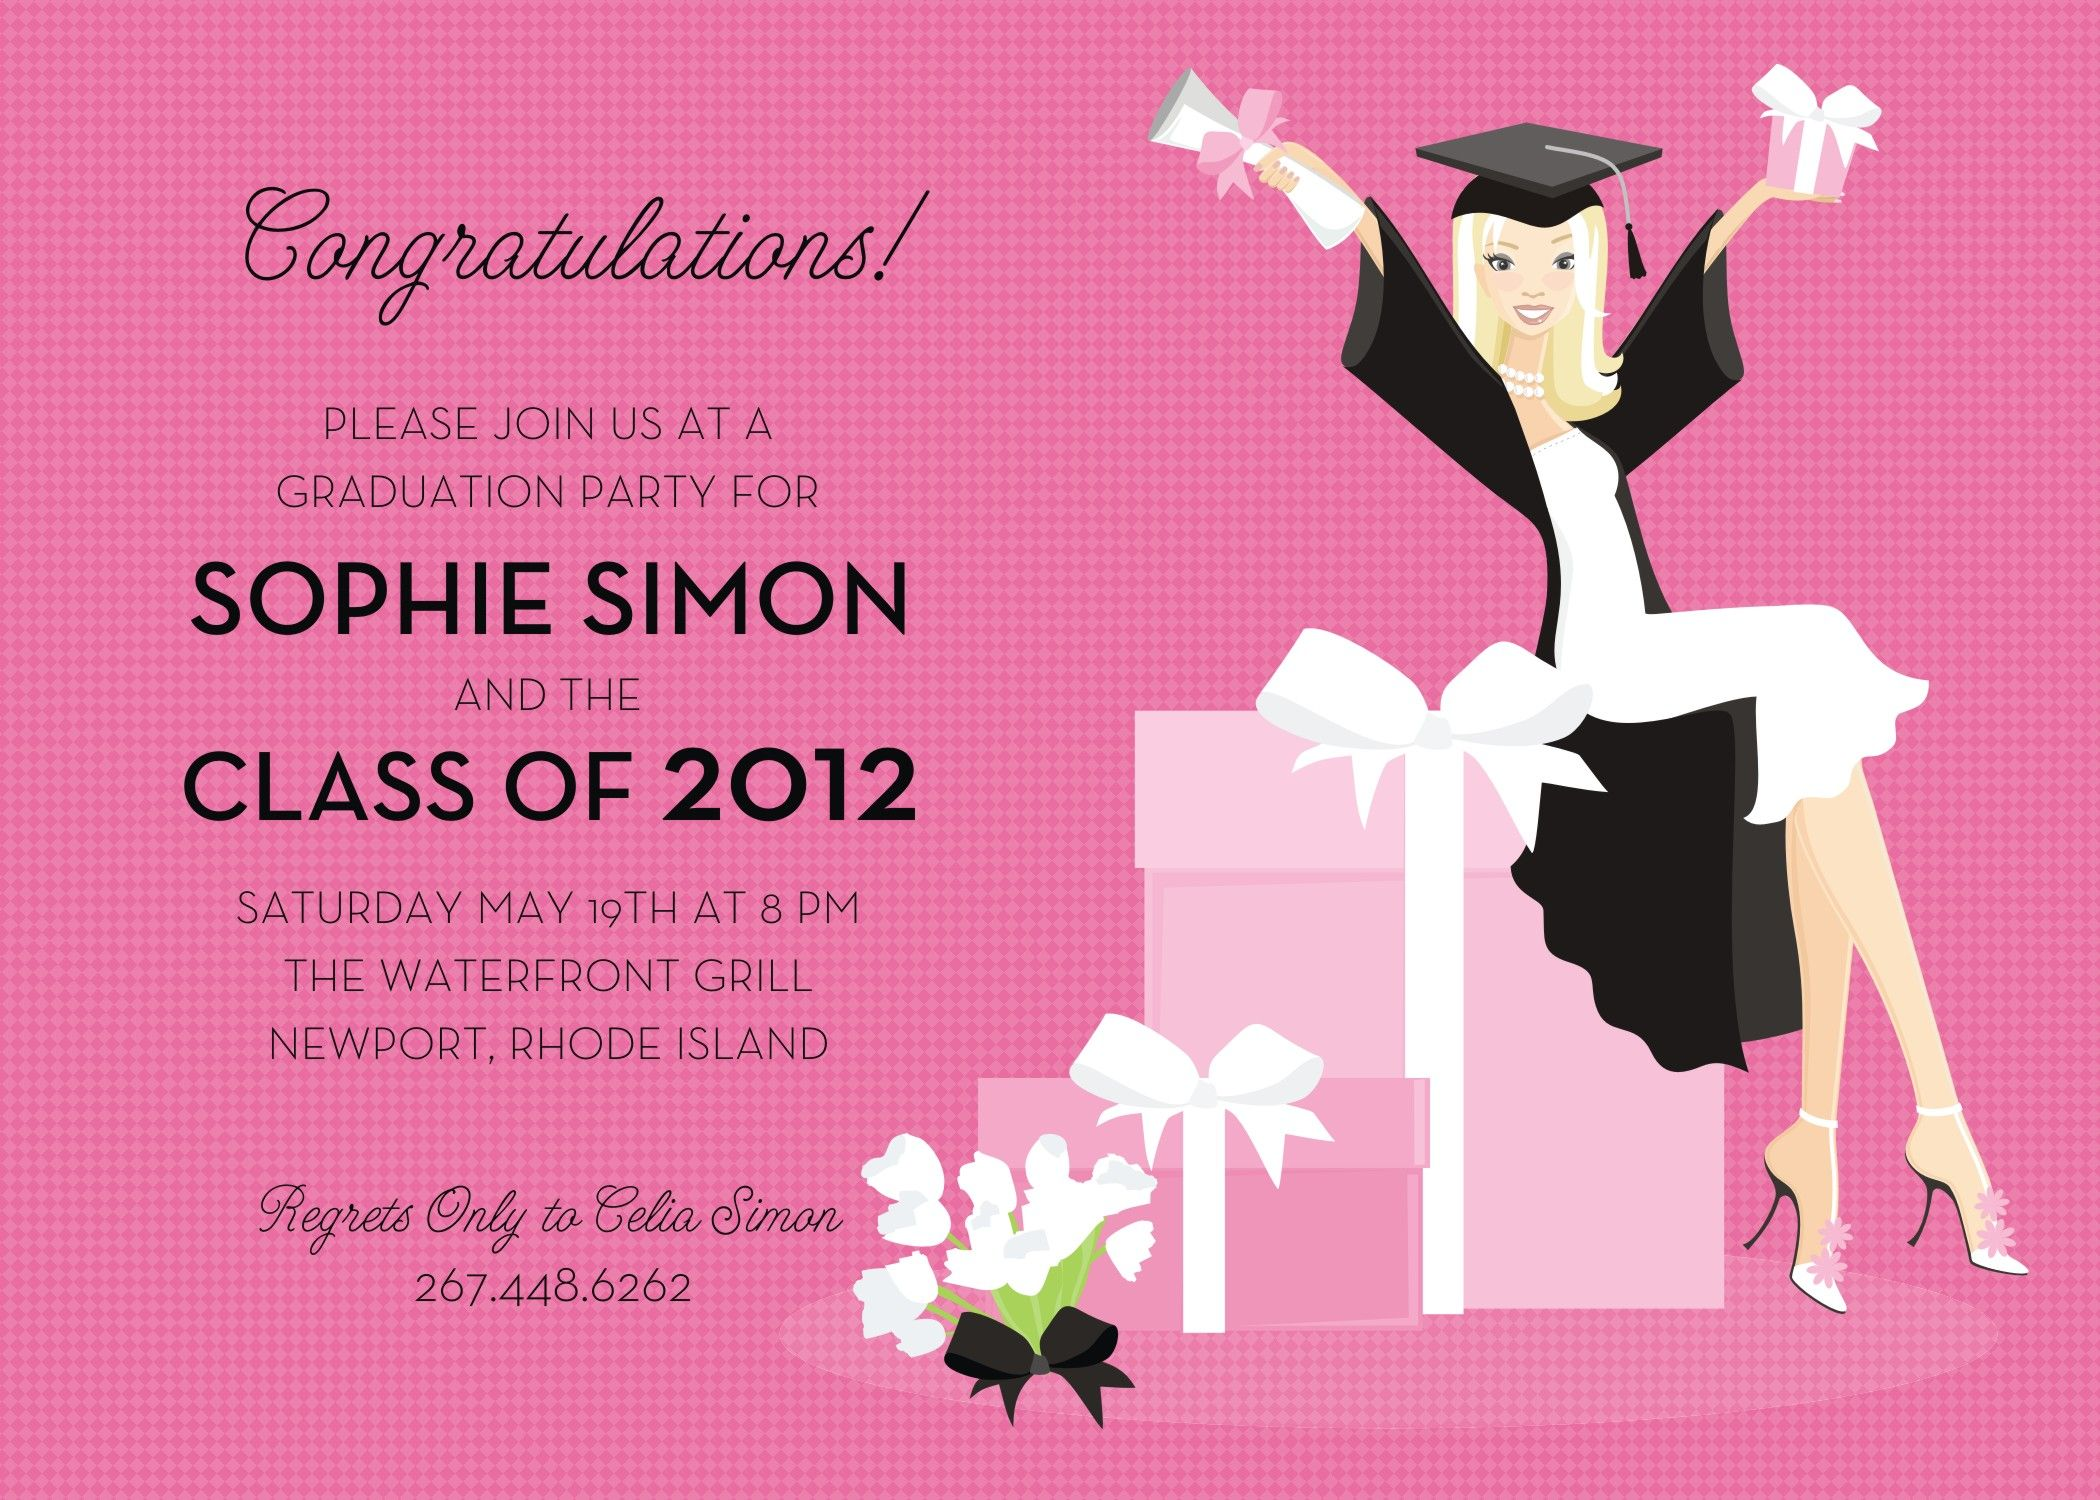 this invitation features a stylish grad girl sitting on a decorative box holding up her diploma